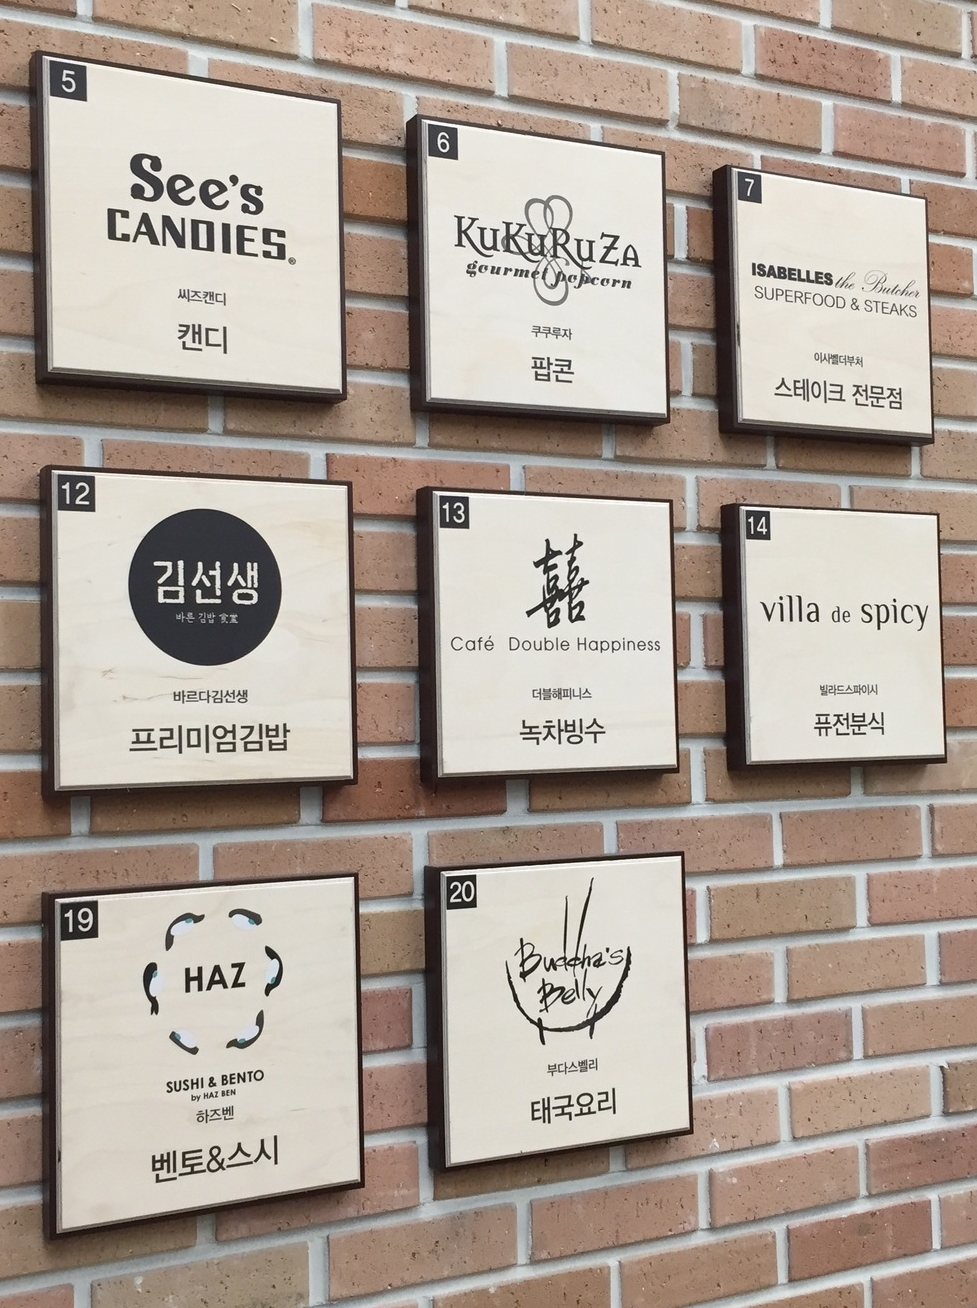 Click to see a close up of each restaurant's logo.